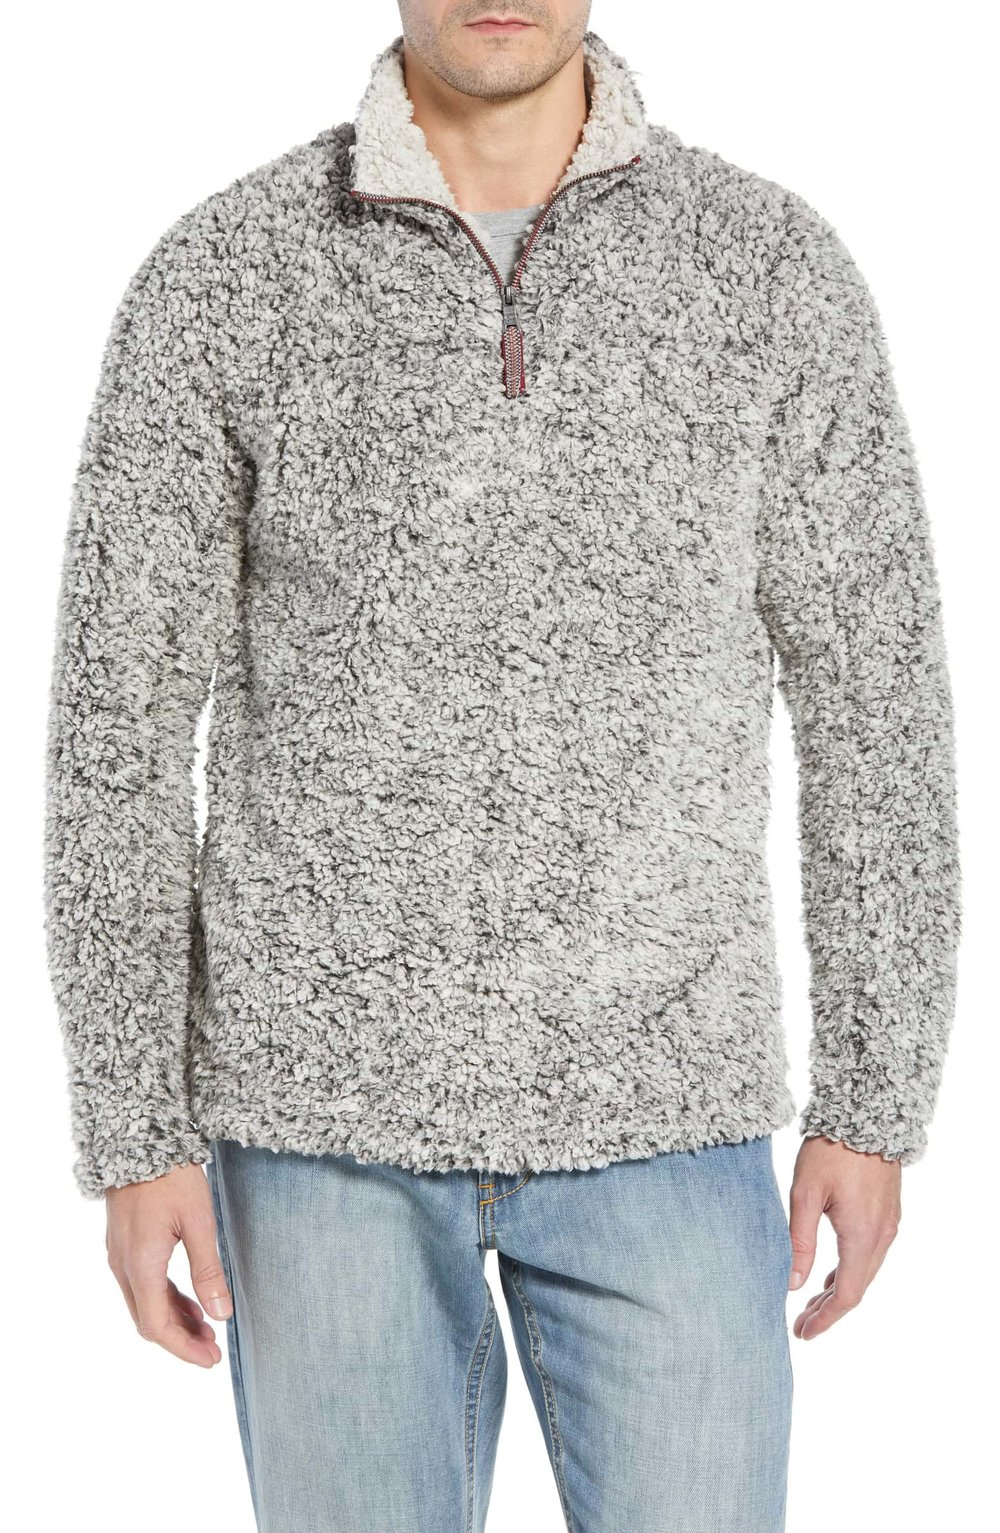 true grit pull over - This cozy pull over is great for the upcoming weather!